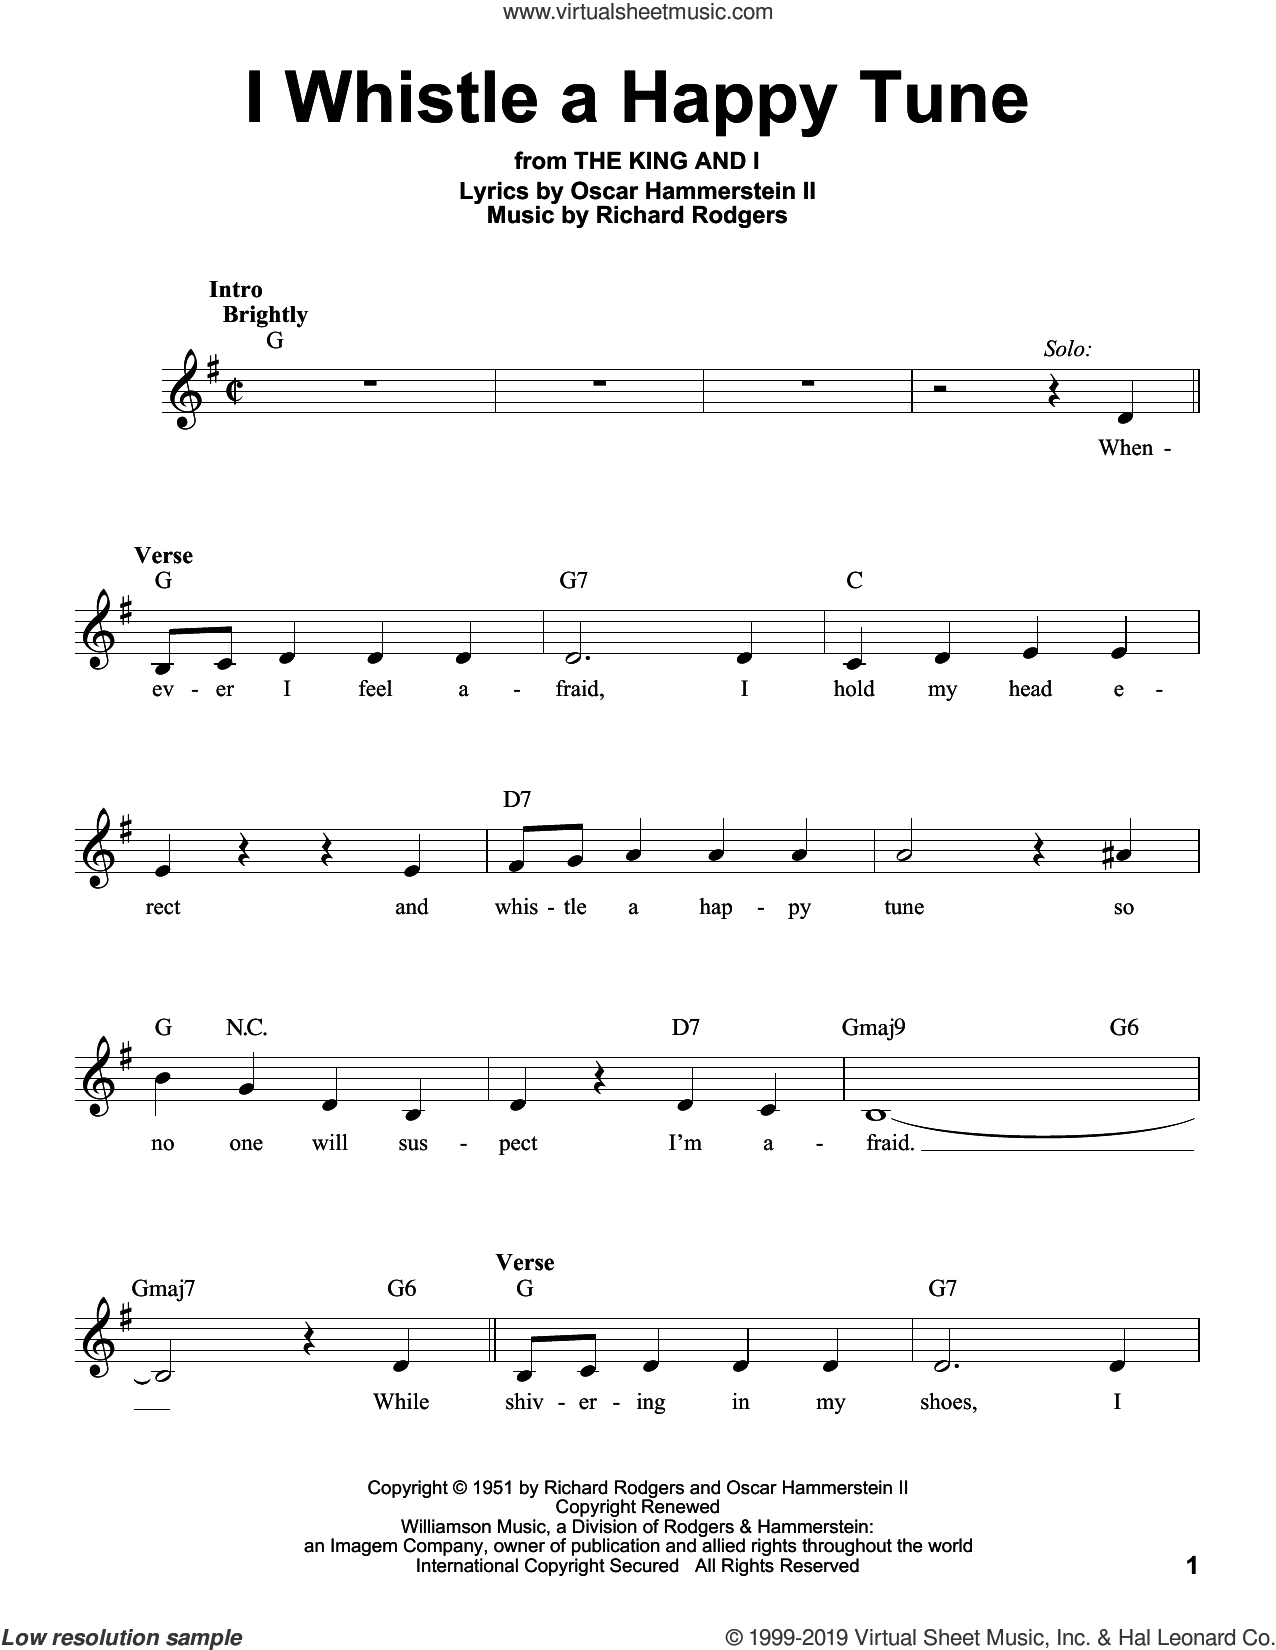 I Whistle A Happy Tune sheet music for voice solo by Rodgers & Hammerstein, Oscar II Hammerstein and Richard Rodgers, intermediate skill level